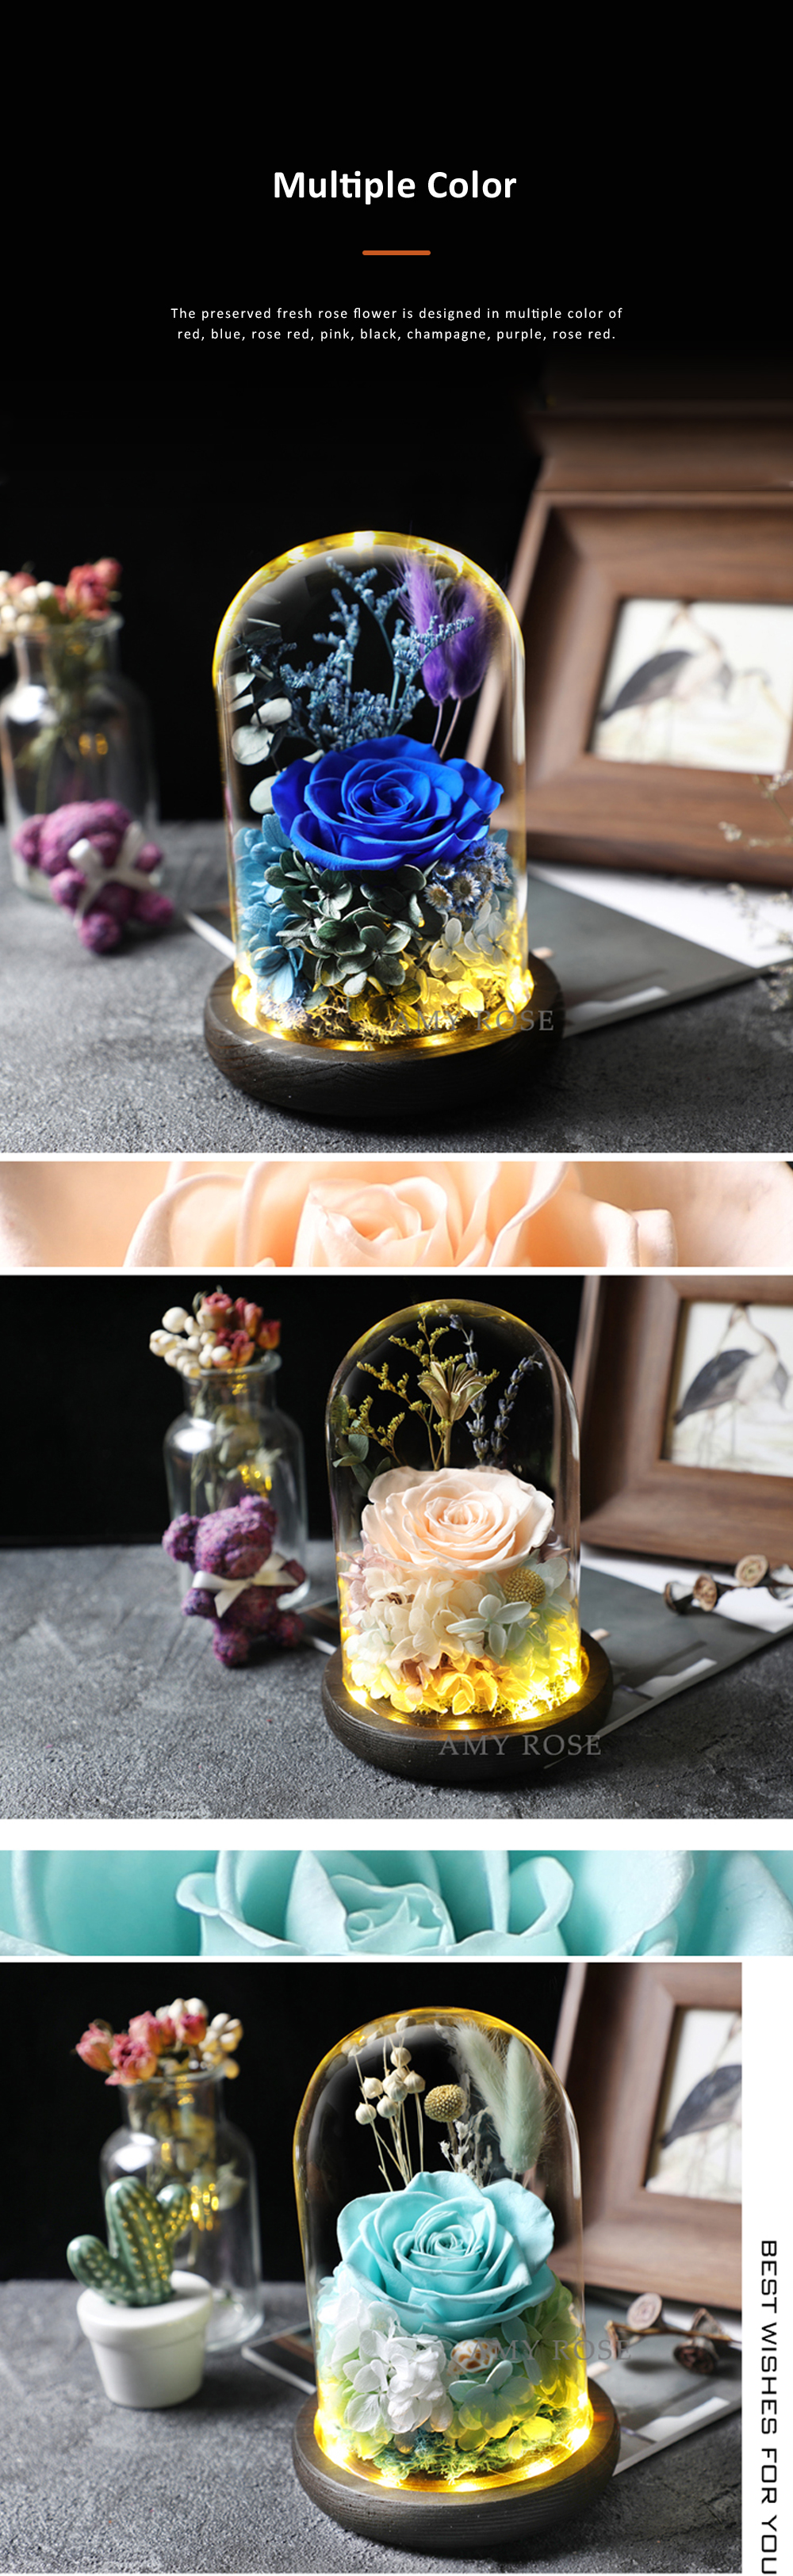 AMYROS Preserved Fresh Flower for Valentine's Day Christmas Dry Rose Bouquet Glass Covered Preserved Fresh Flower 4